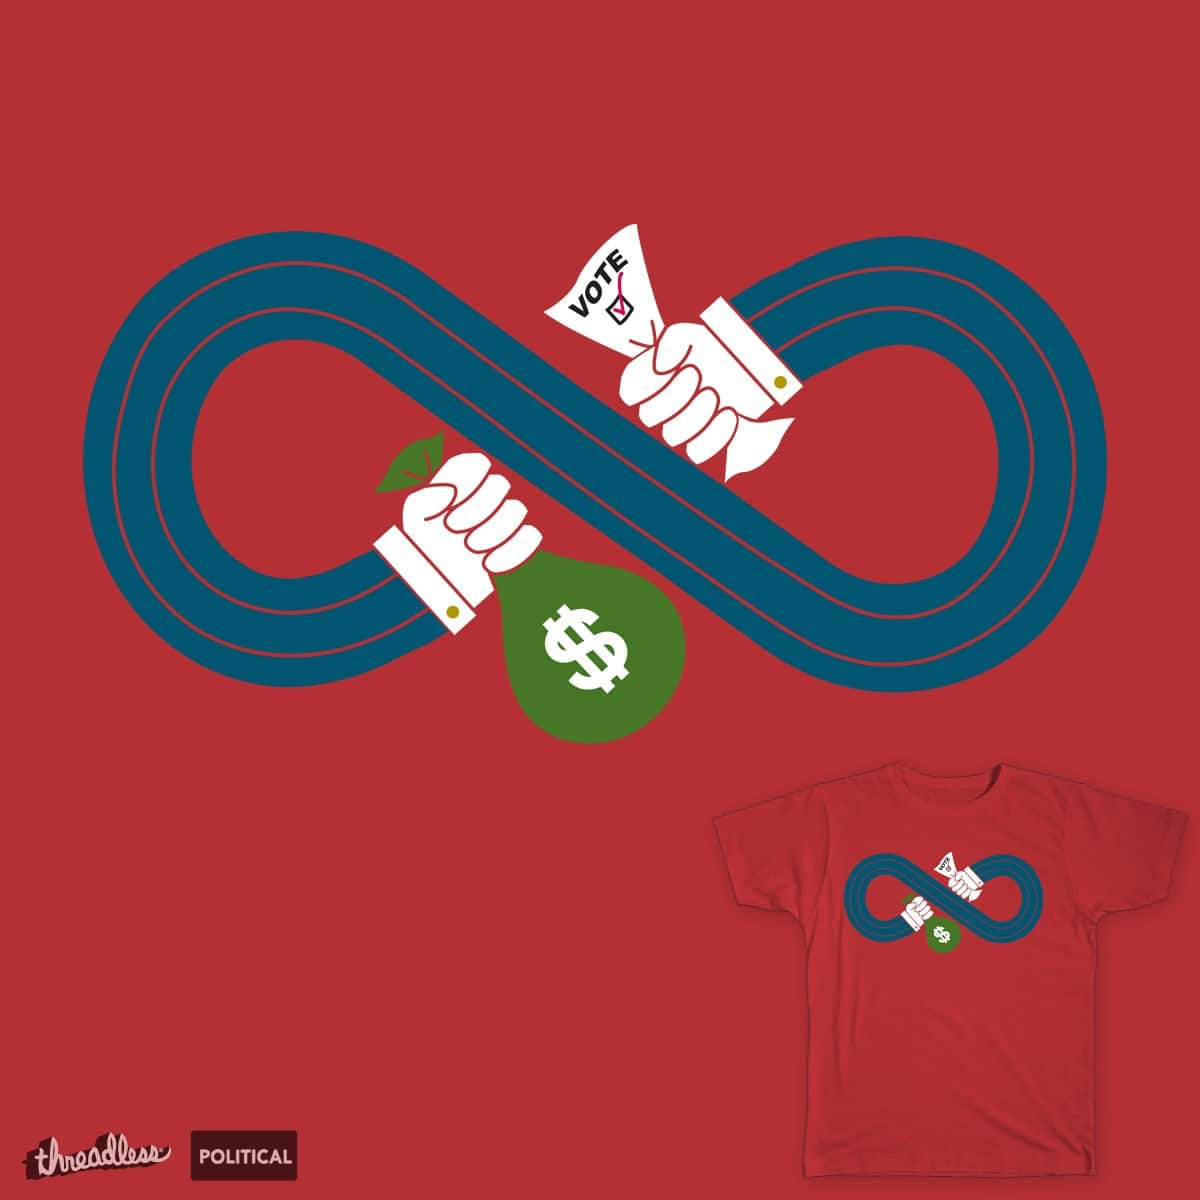 Politics as usual by dnice25 on Threadless